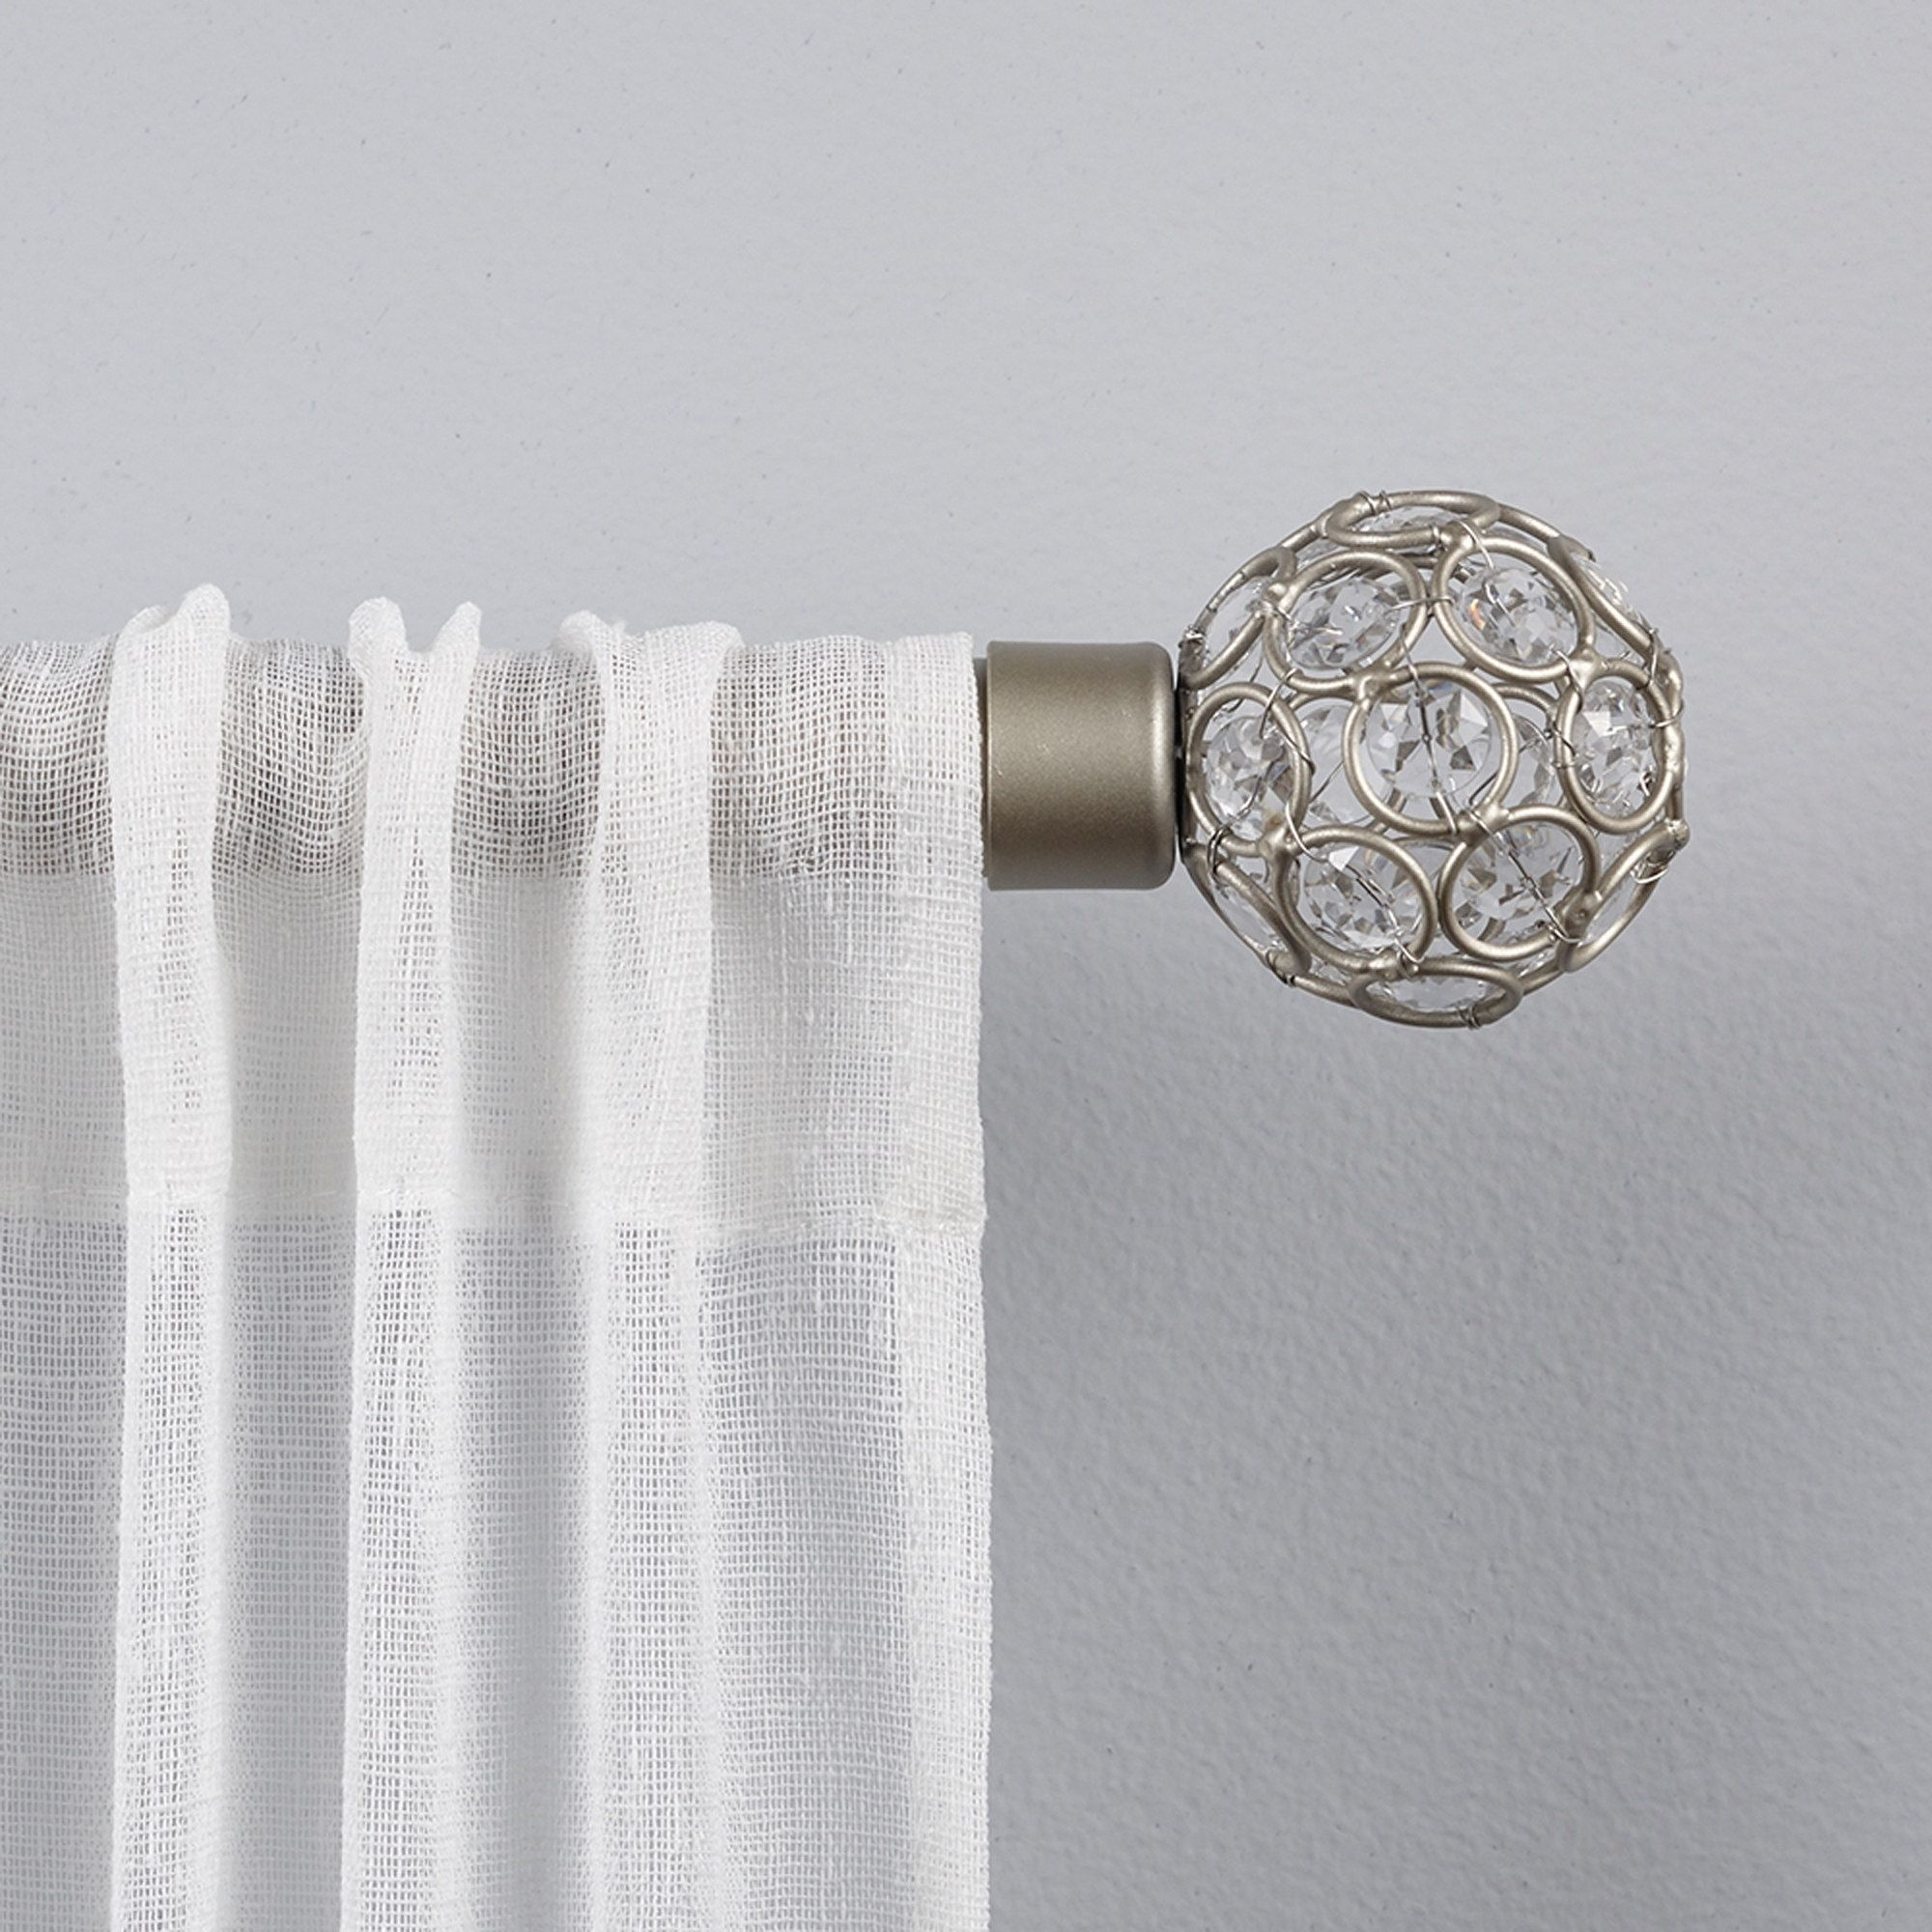 ATI Home Rings 1 Curtain Rod And Finial Set 36 To 72